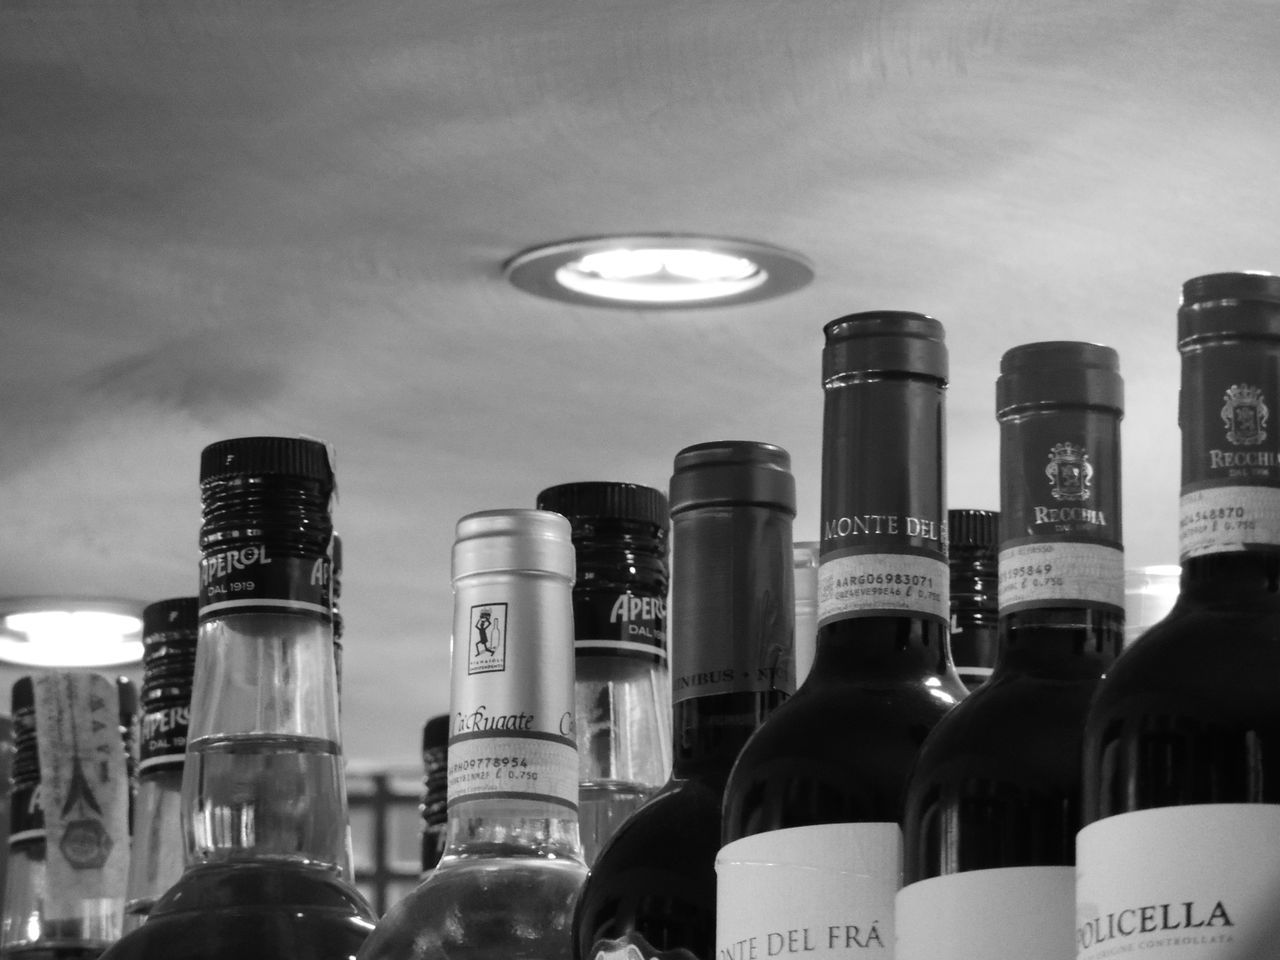 Alcohol Bottle Bottle Art Bottle Cap Bottle Of Wine Bottles Bottles !!!! Bottles Collection Bottles Of Wine Brewery Day Food And Drink Industry Industry Low Angle View No People Outdoors Sky